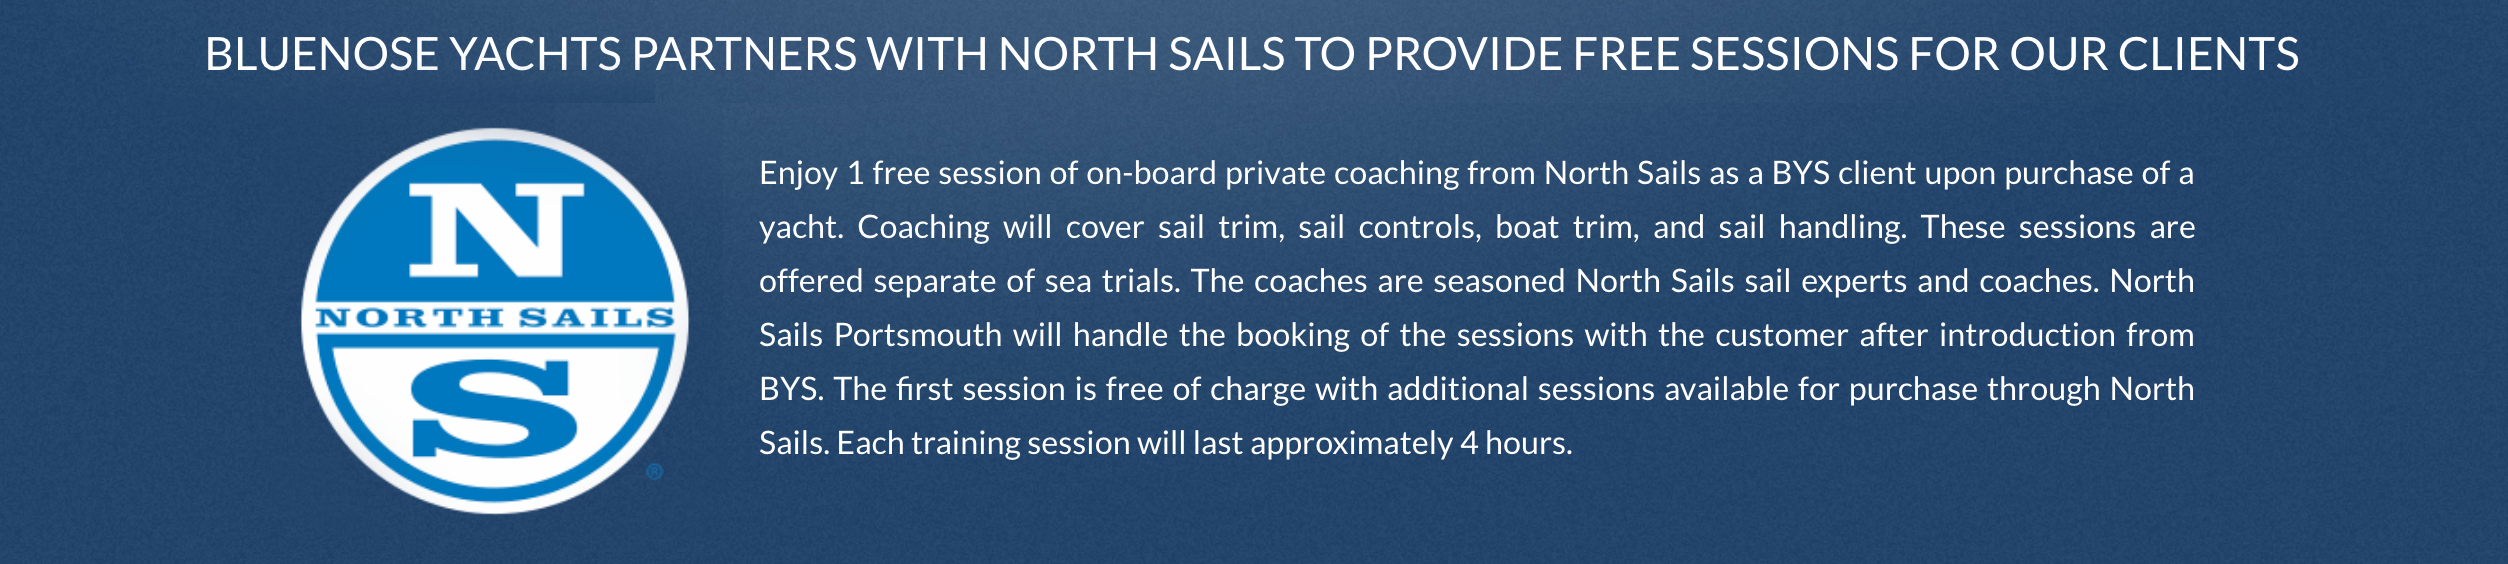 Bluenose Partners with North Sailes Notice